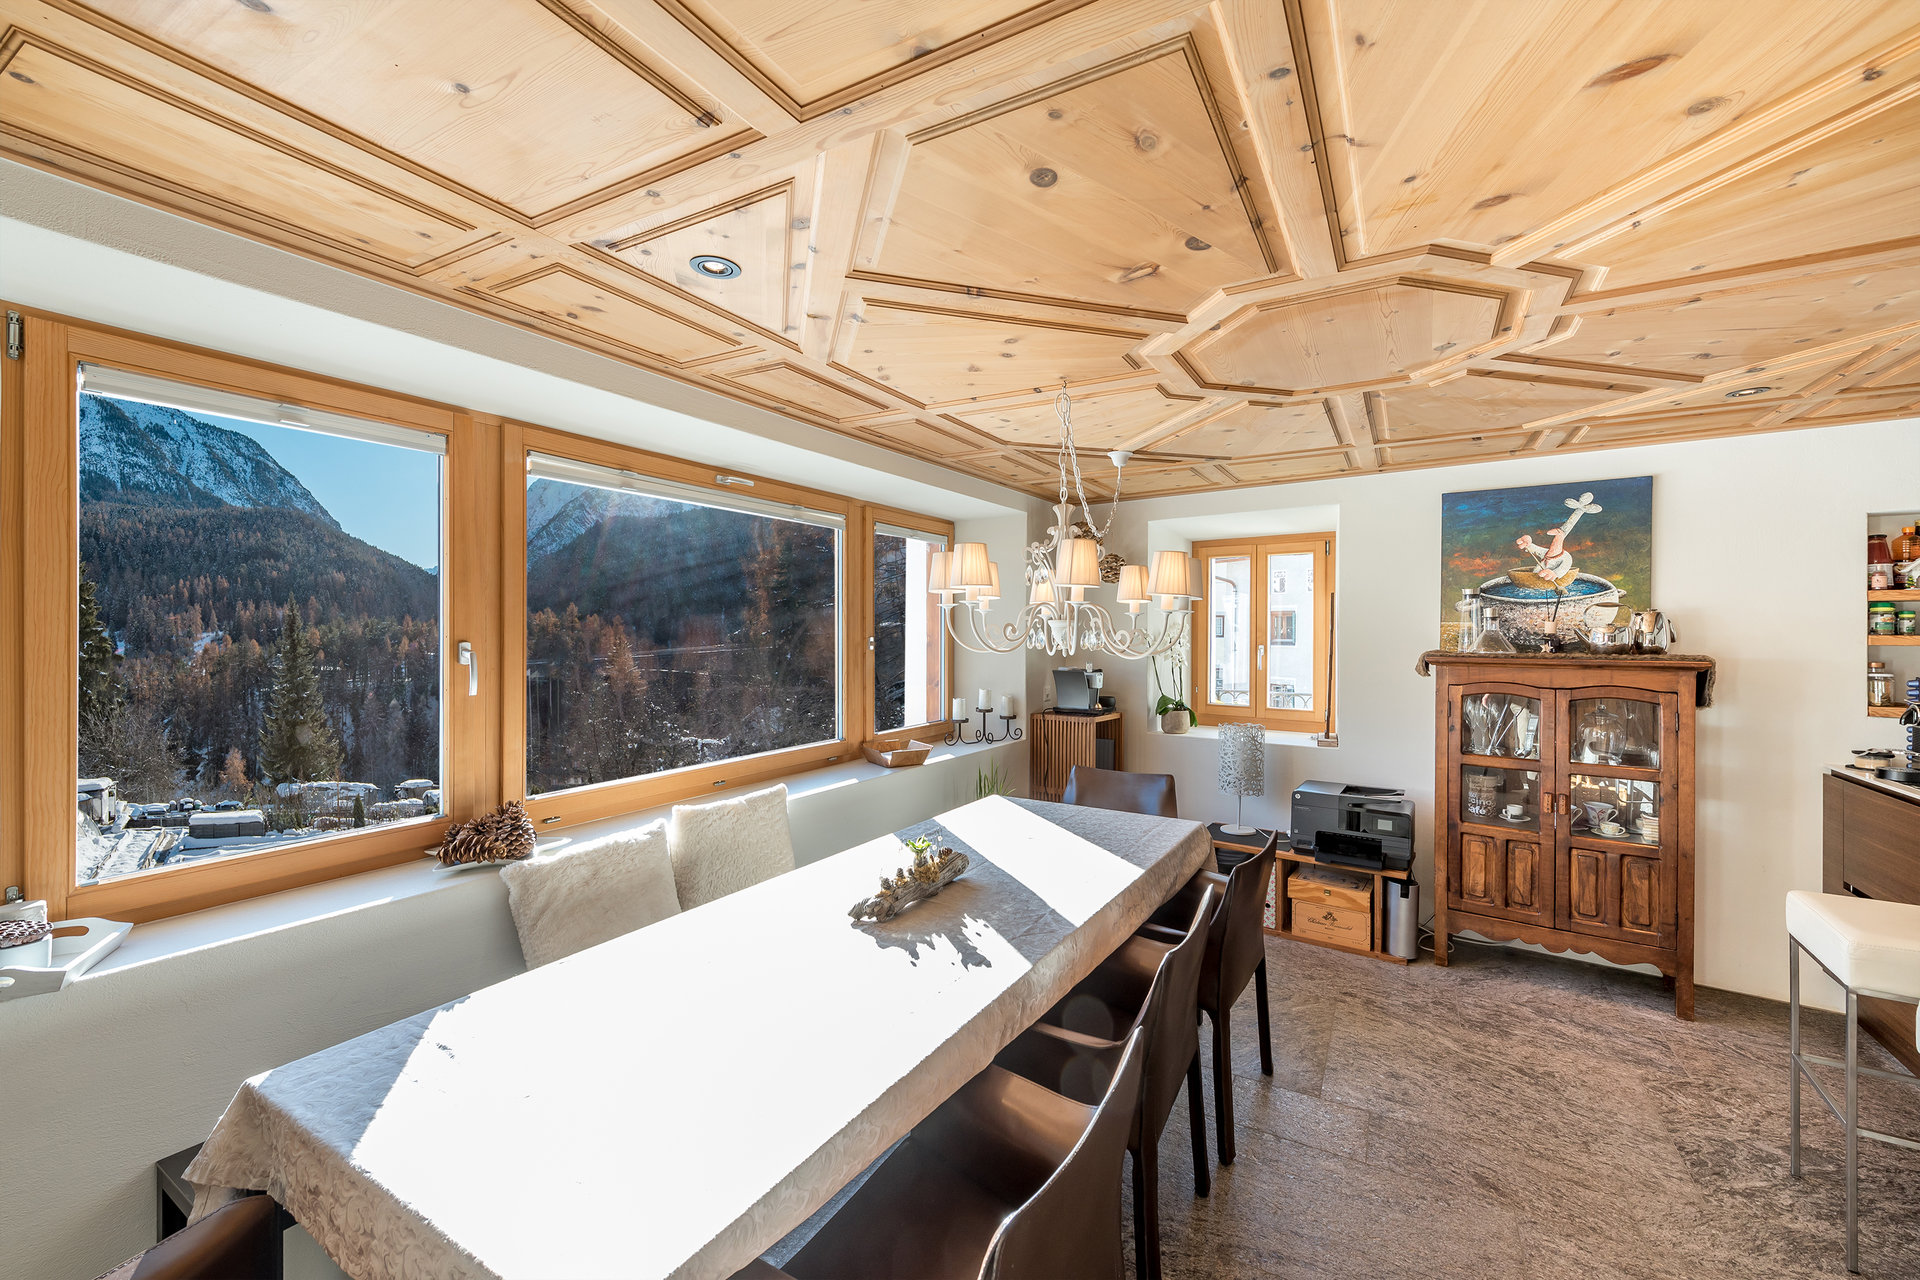 Mountain house for sale in Scoul - dining room overlooking the mountains